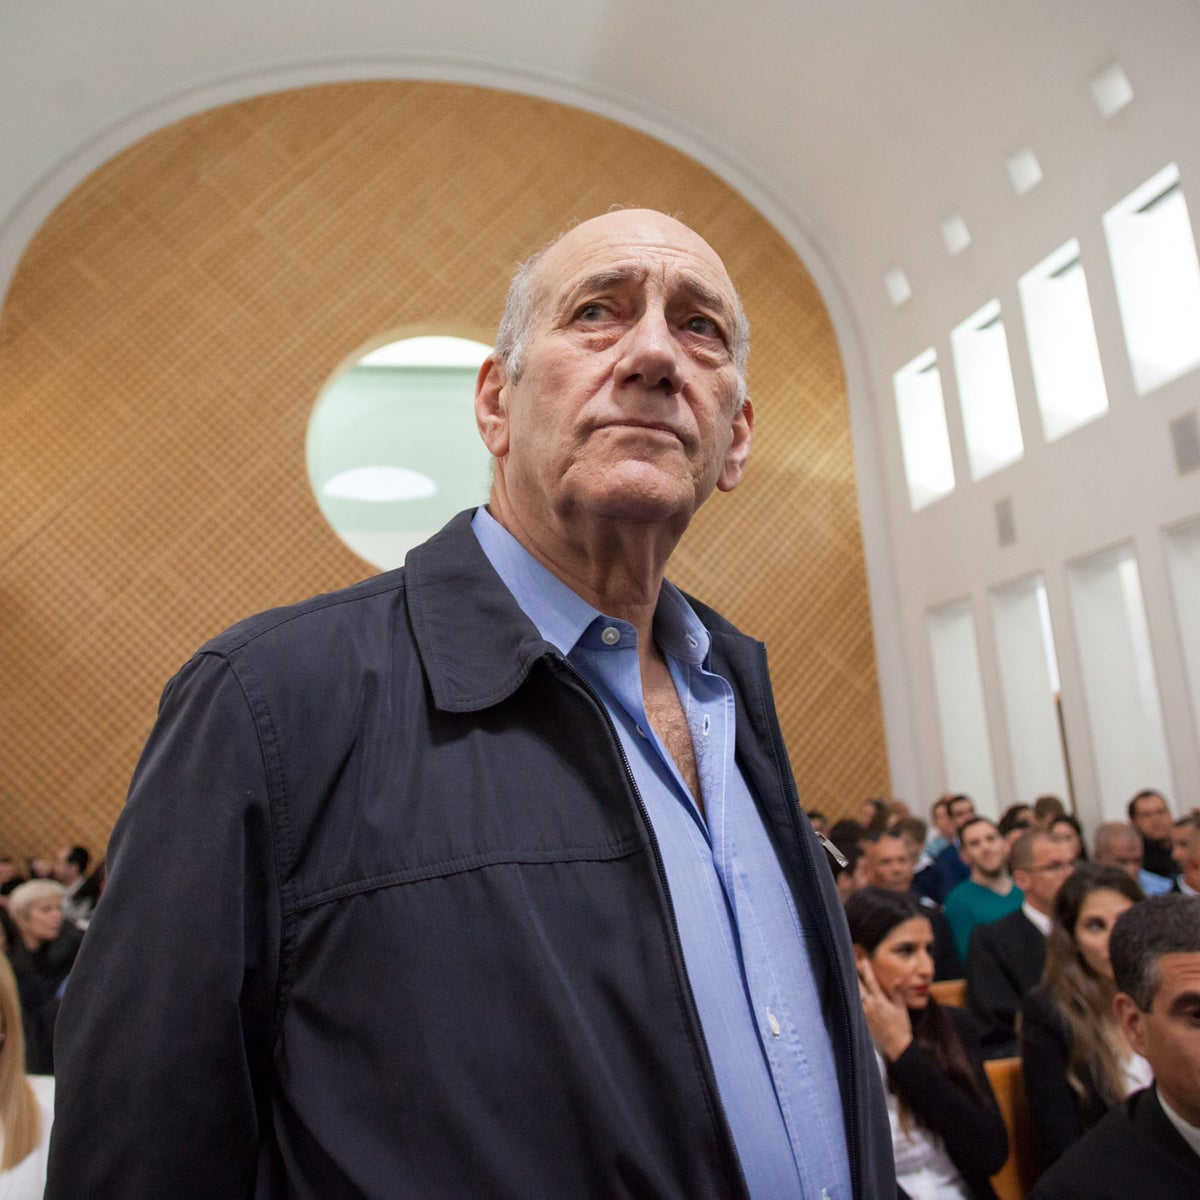 Former Israeli prime minister Ehud Olmert at the Supreme Court in Jerusalem in 2016.